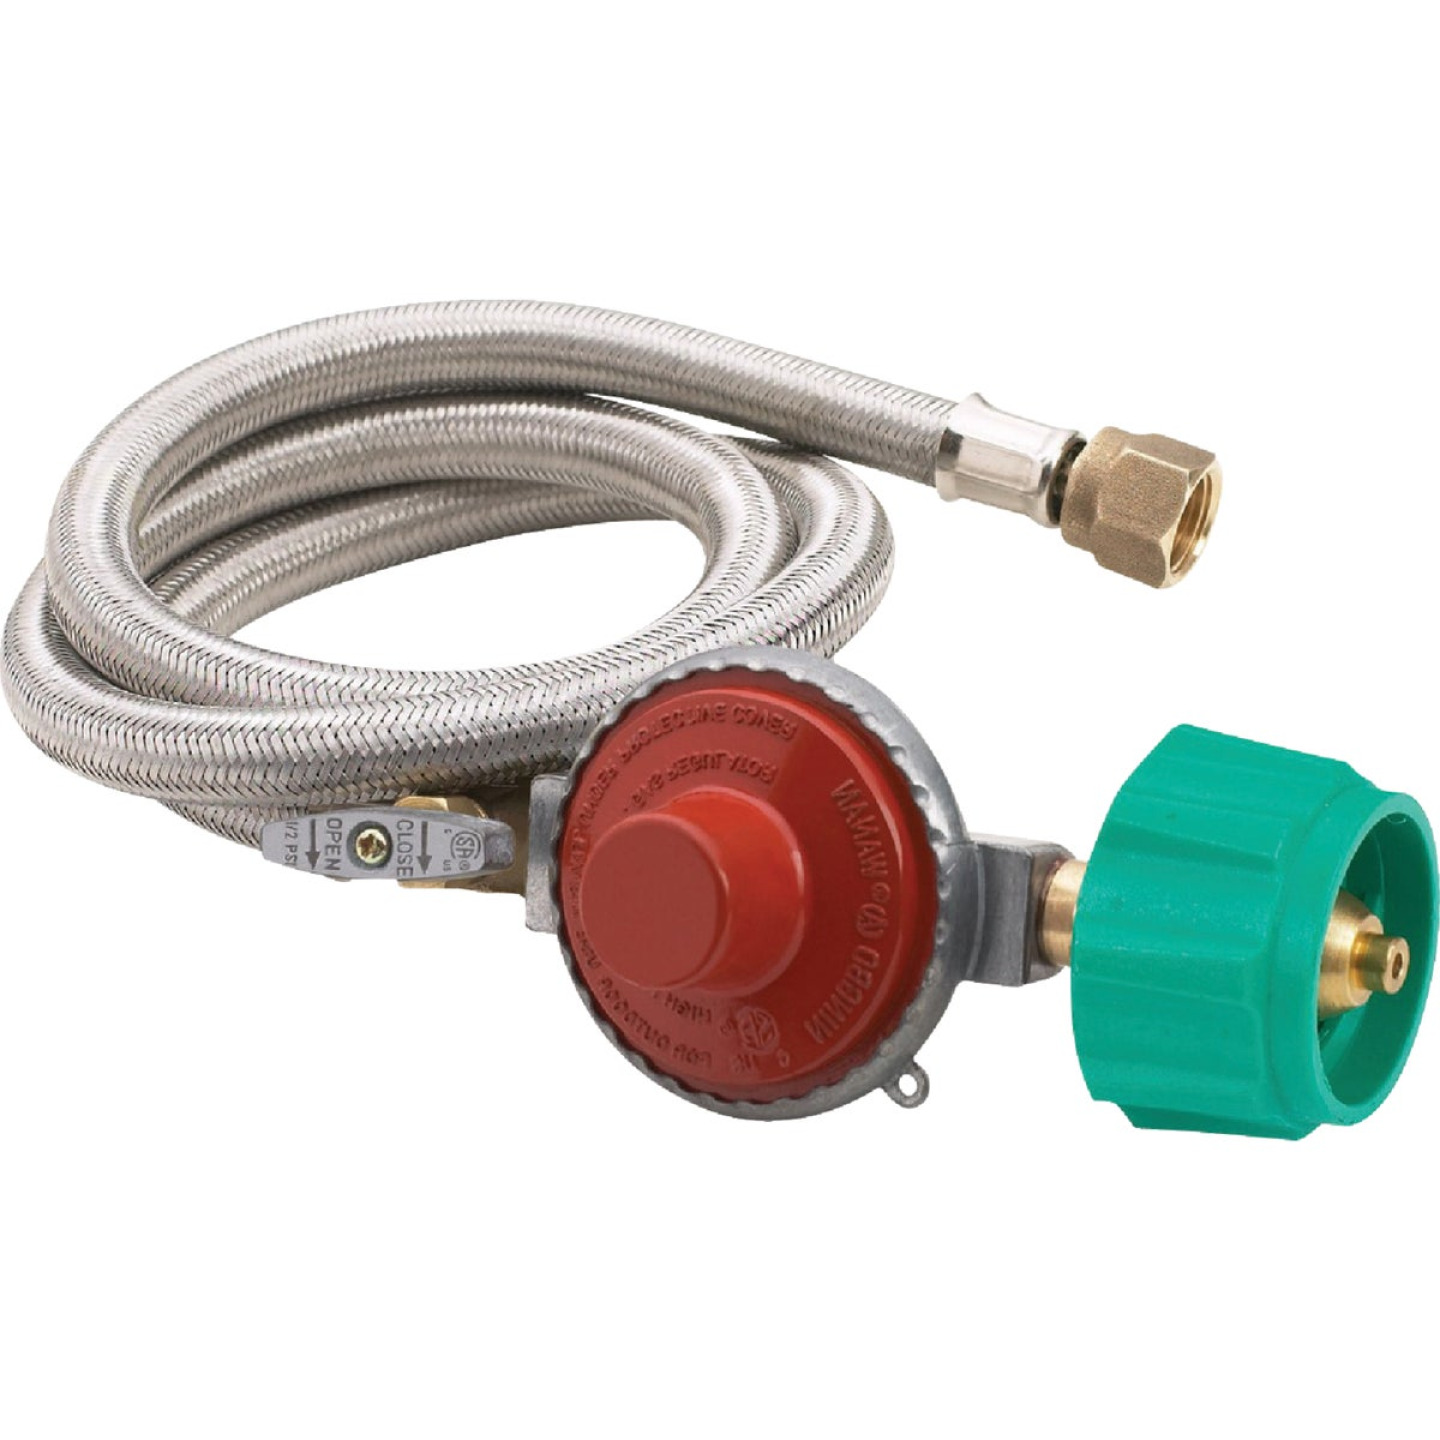 Bayou Classic 48 In. Stainless Steel High Pressure LP Hose & Preset Regulator Image 1